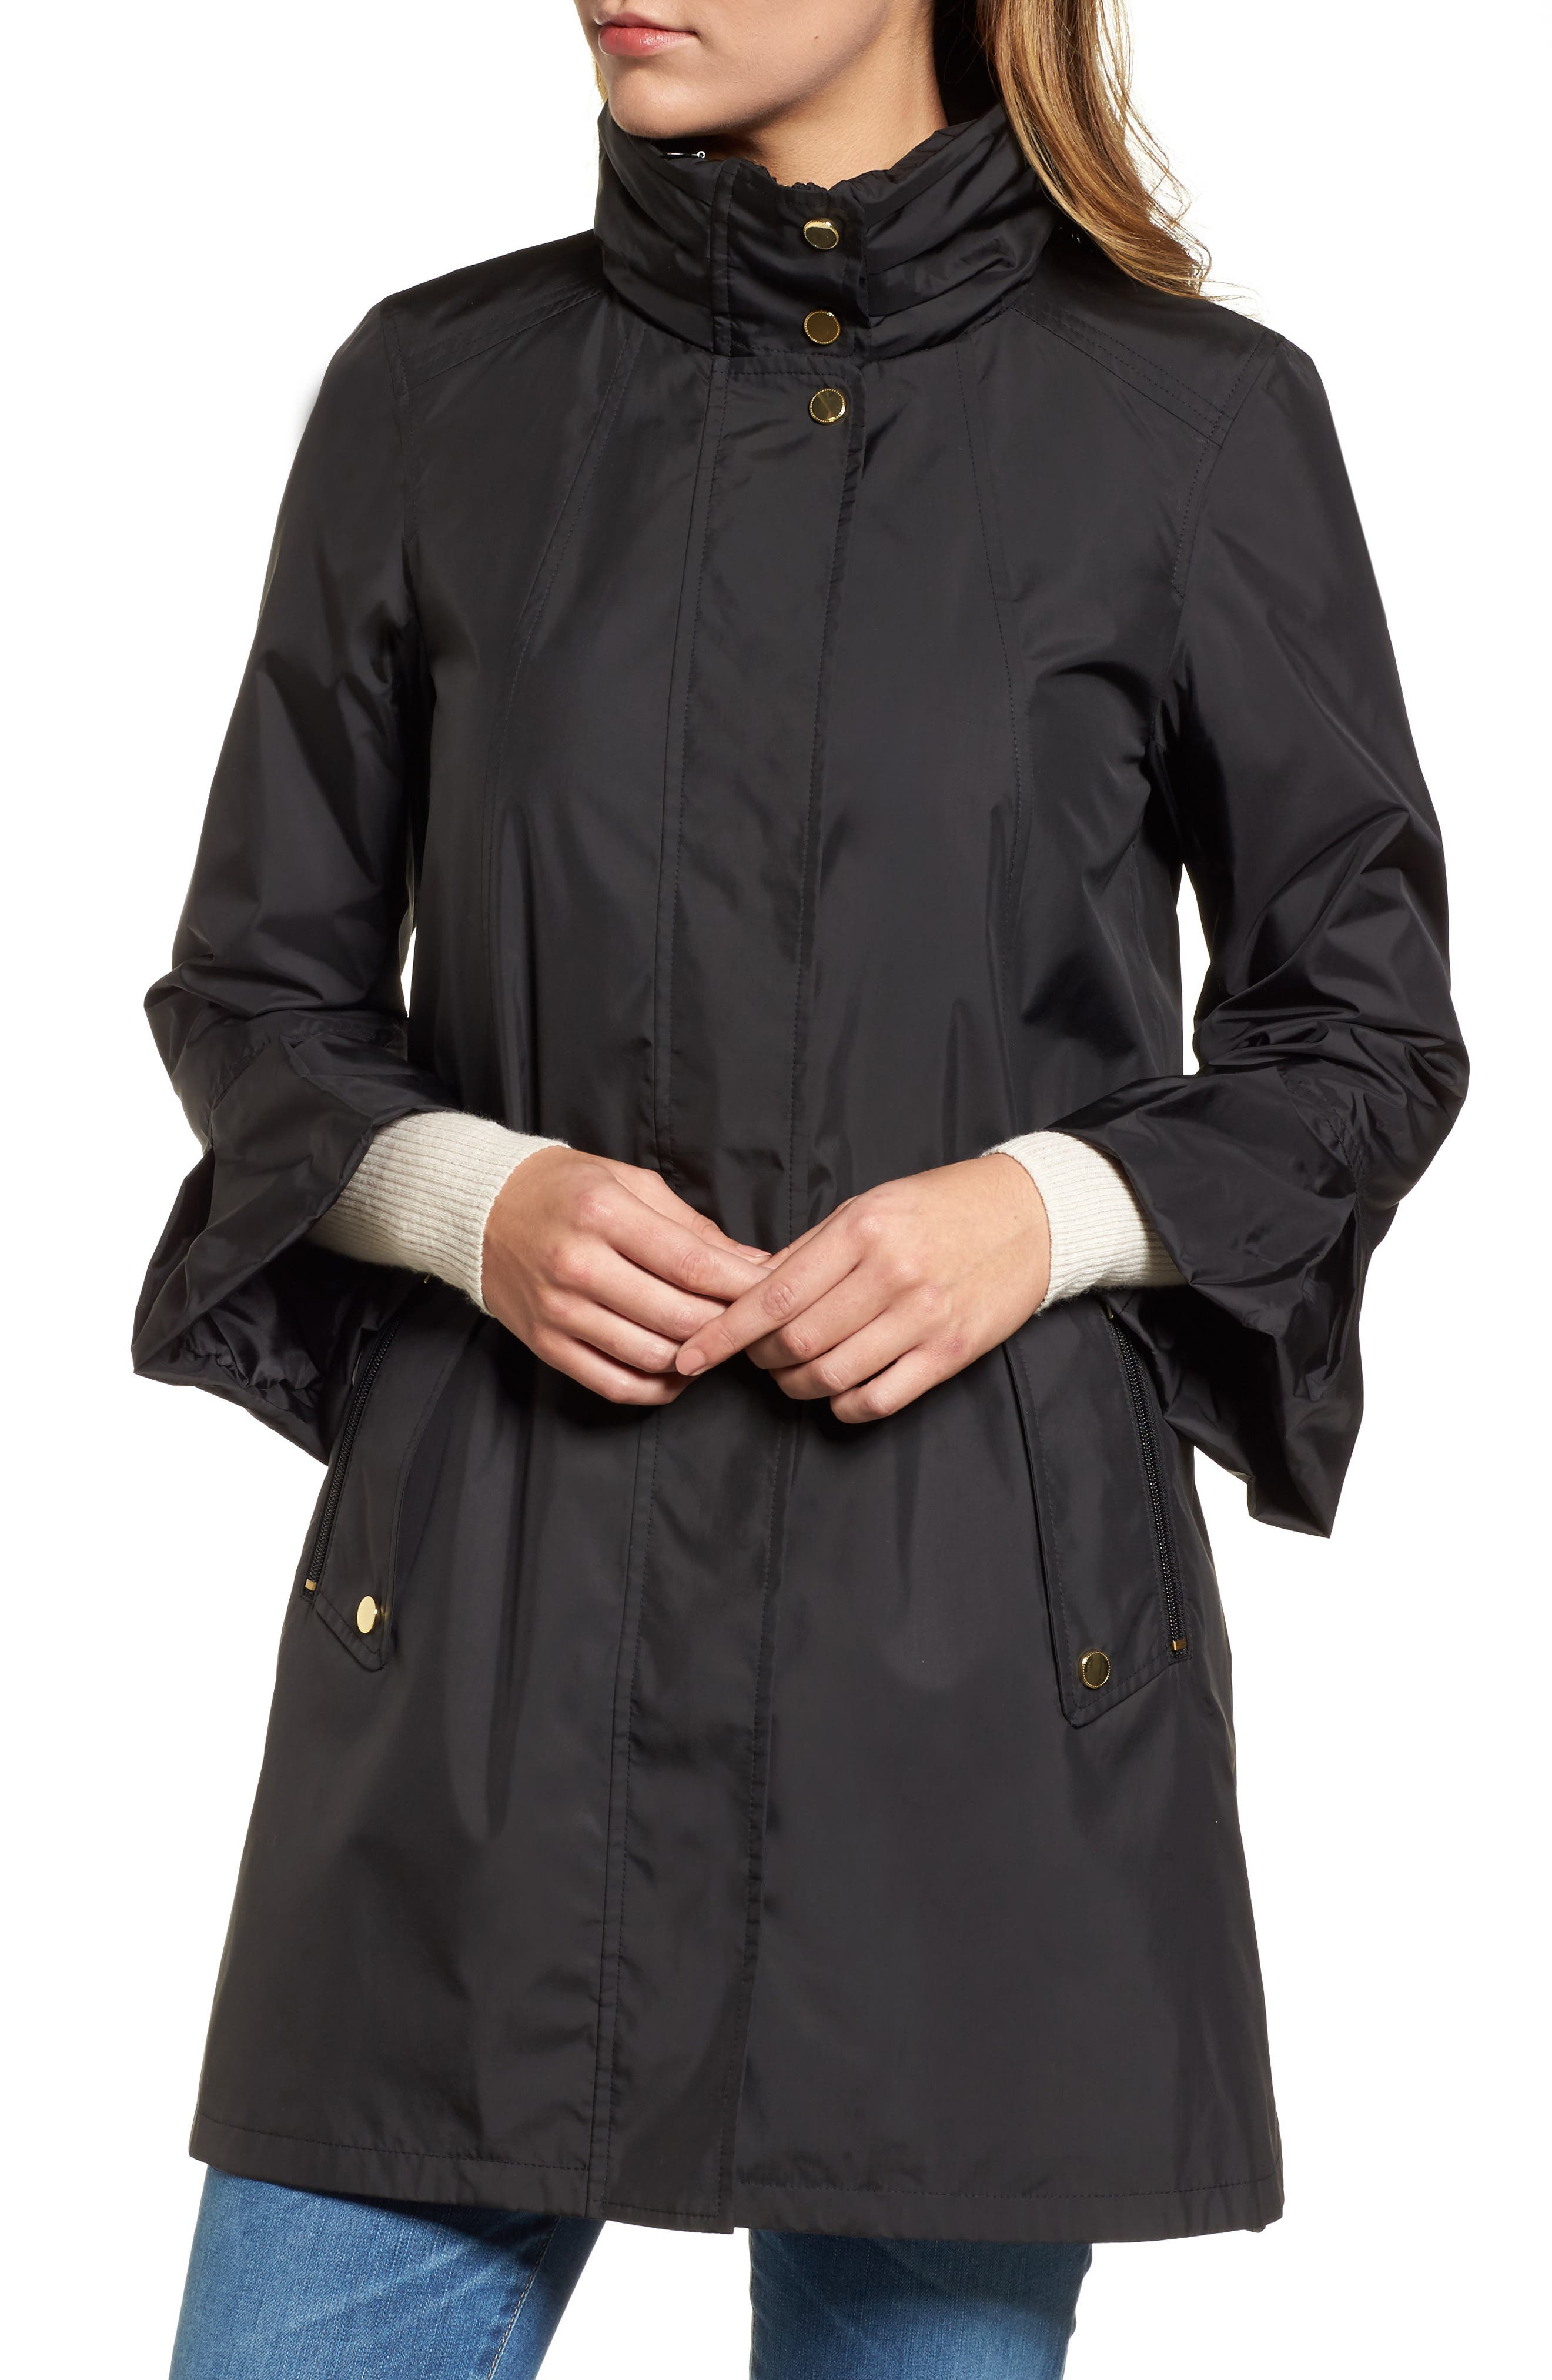 Flare Sleeve Packable Swing Jacket,                             Alternate thumbnail 4, color,                             001